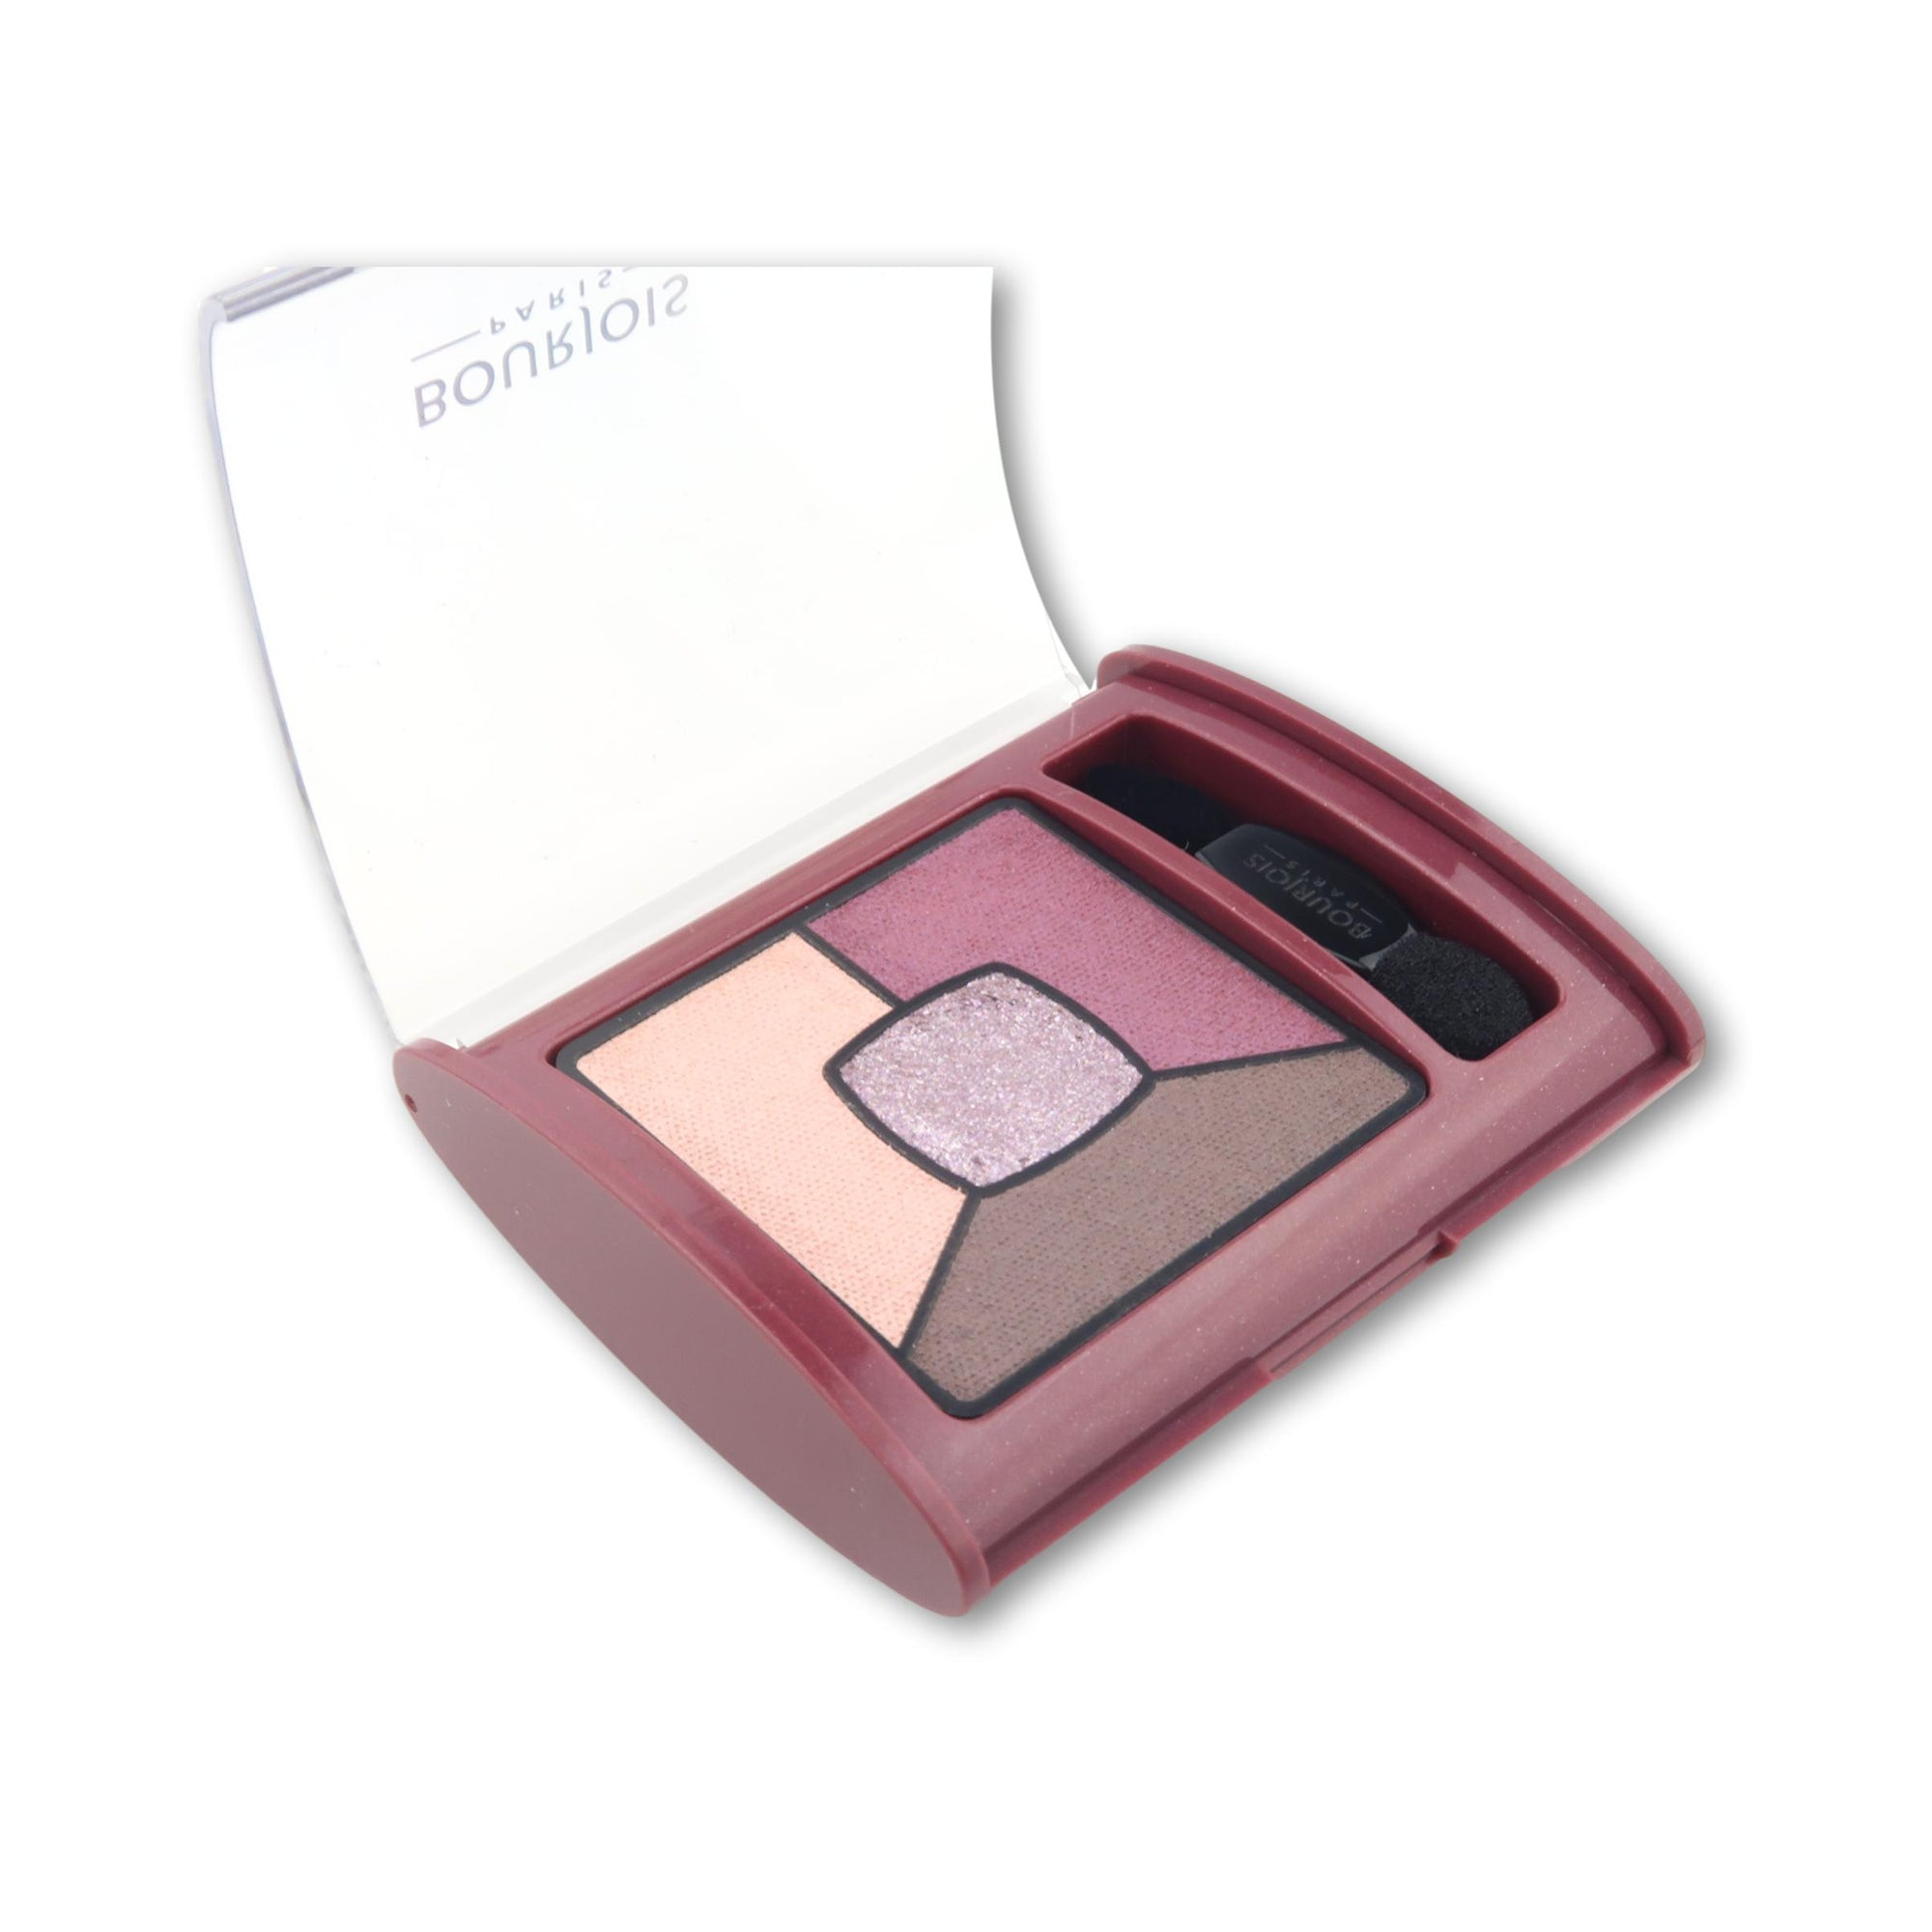 Bourjois Smokey Stories Quad Eyeshadow Brilliant Prunette 015